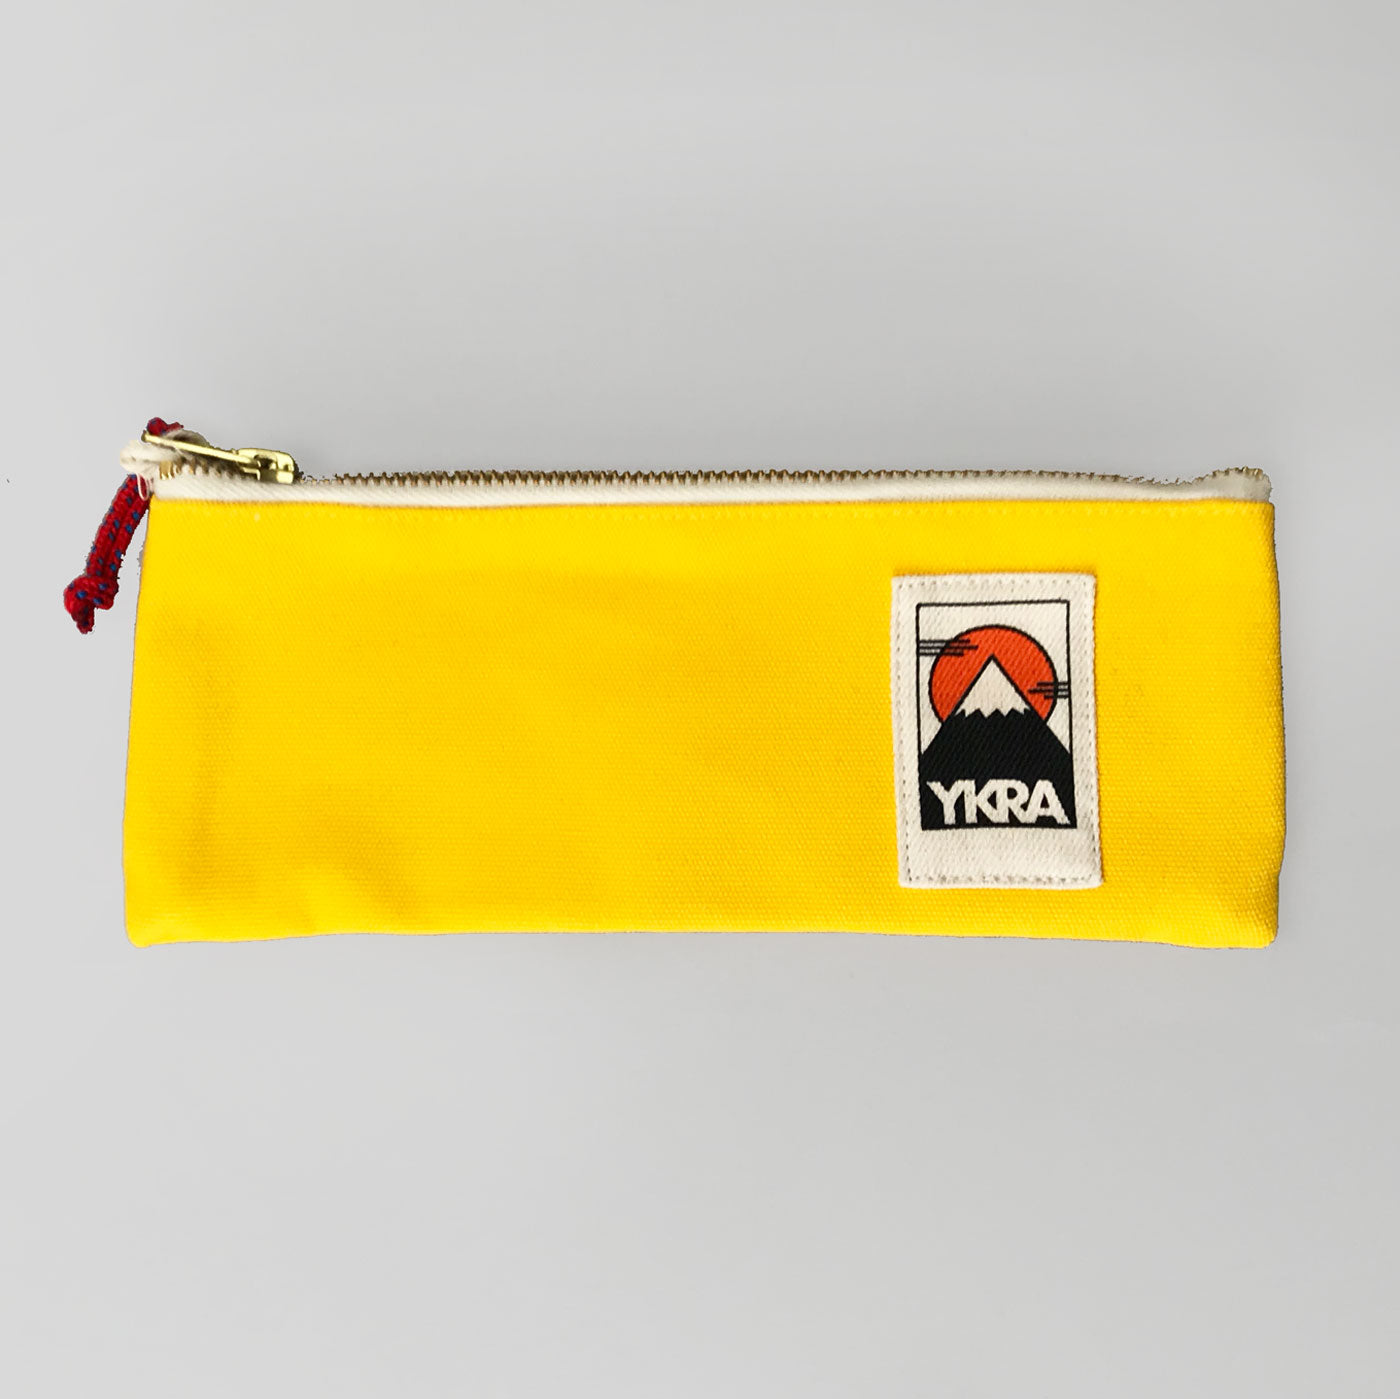 YKRA Pencil Case - Yellow - Colours May Vary